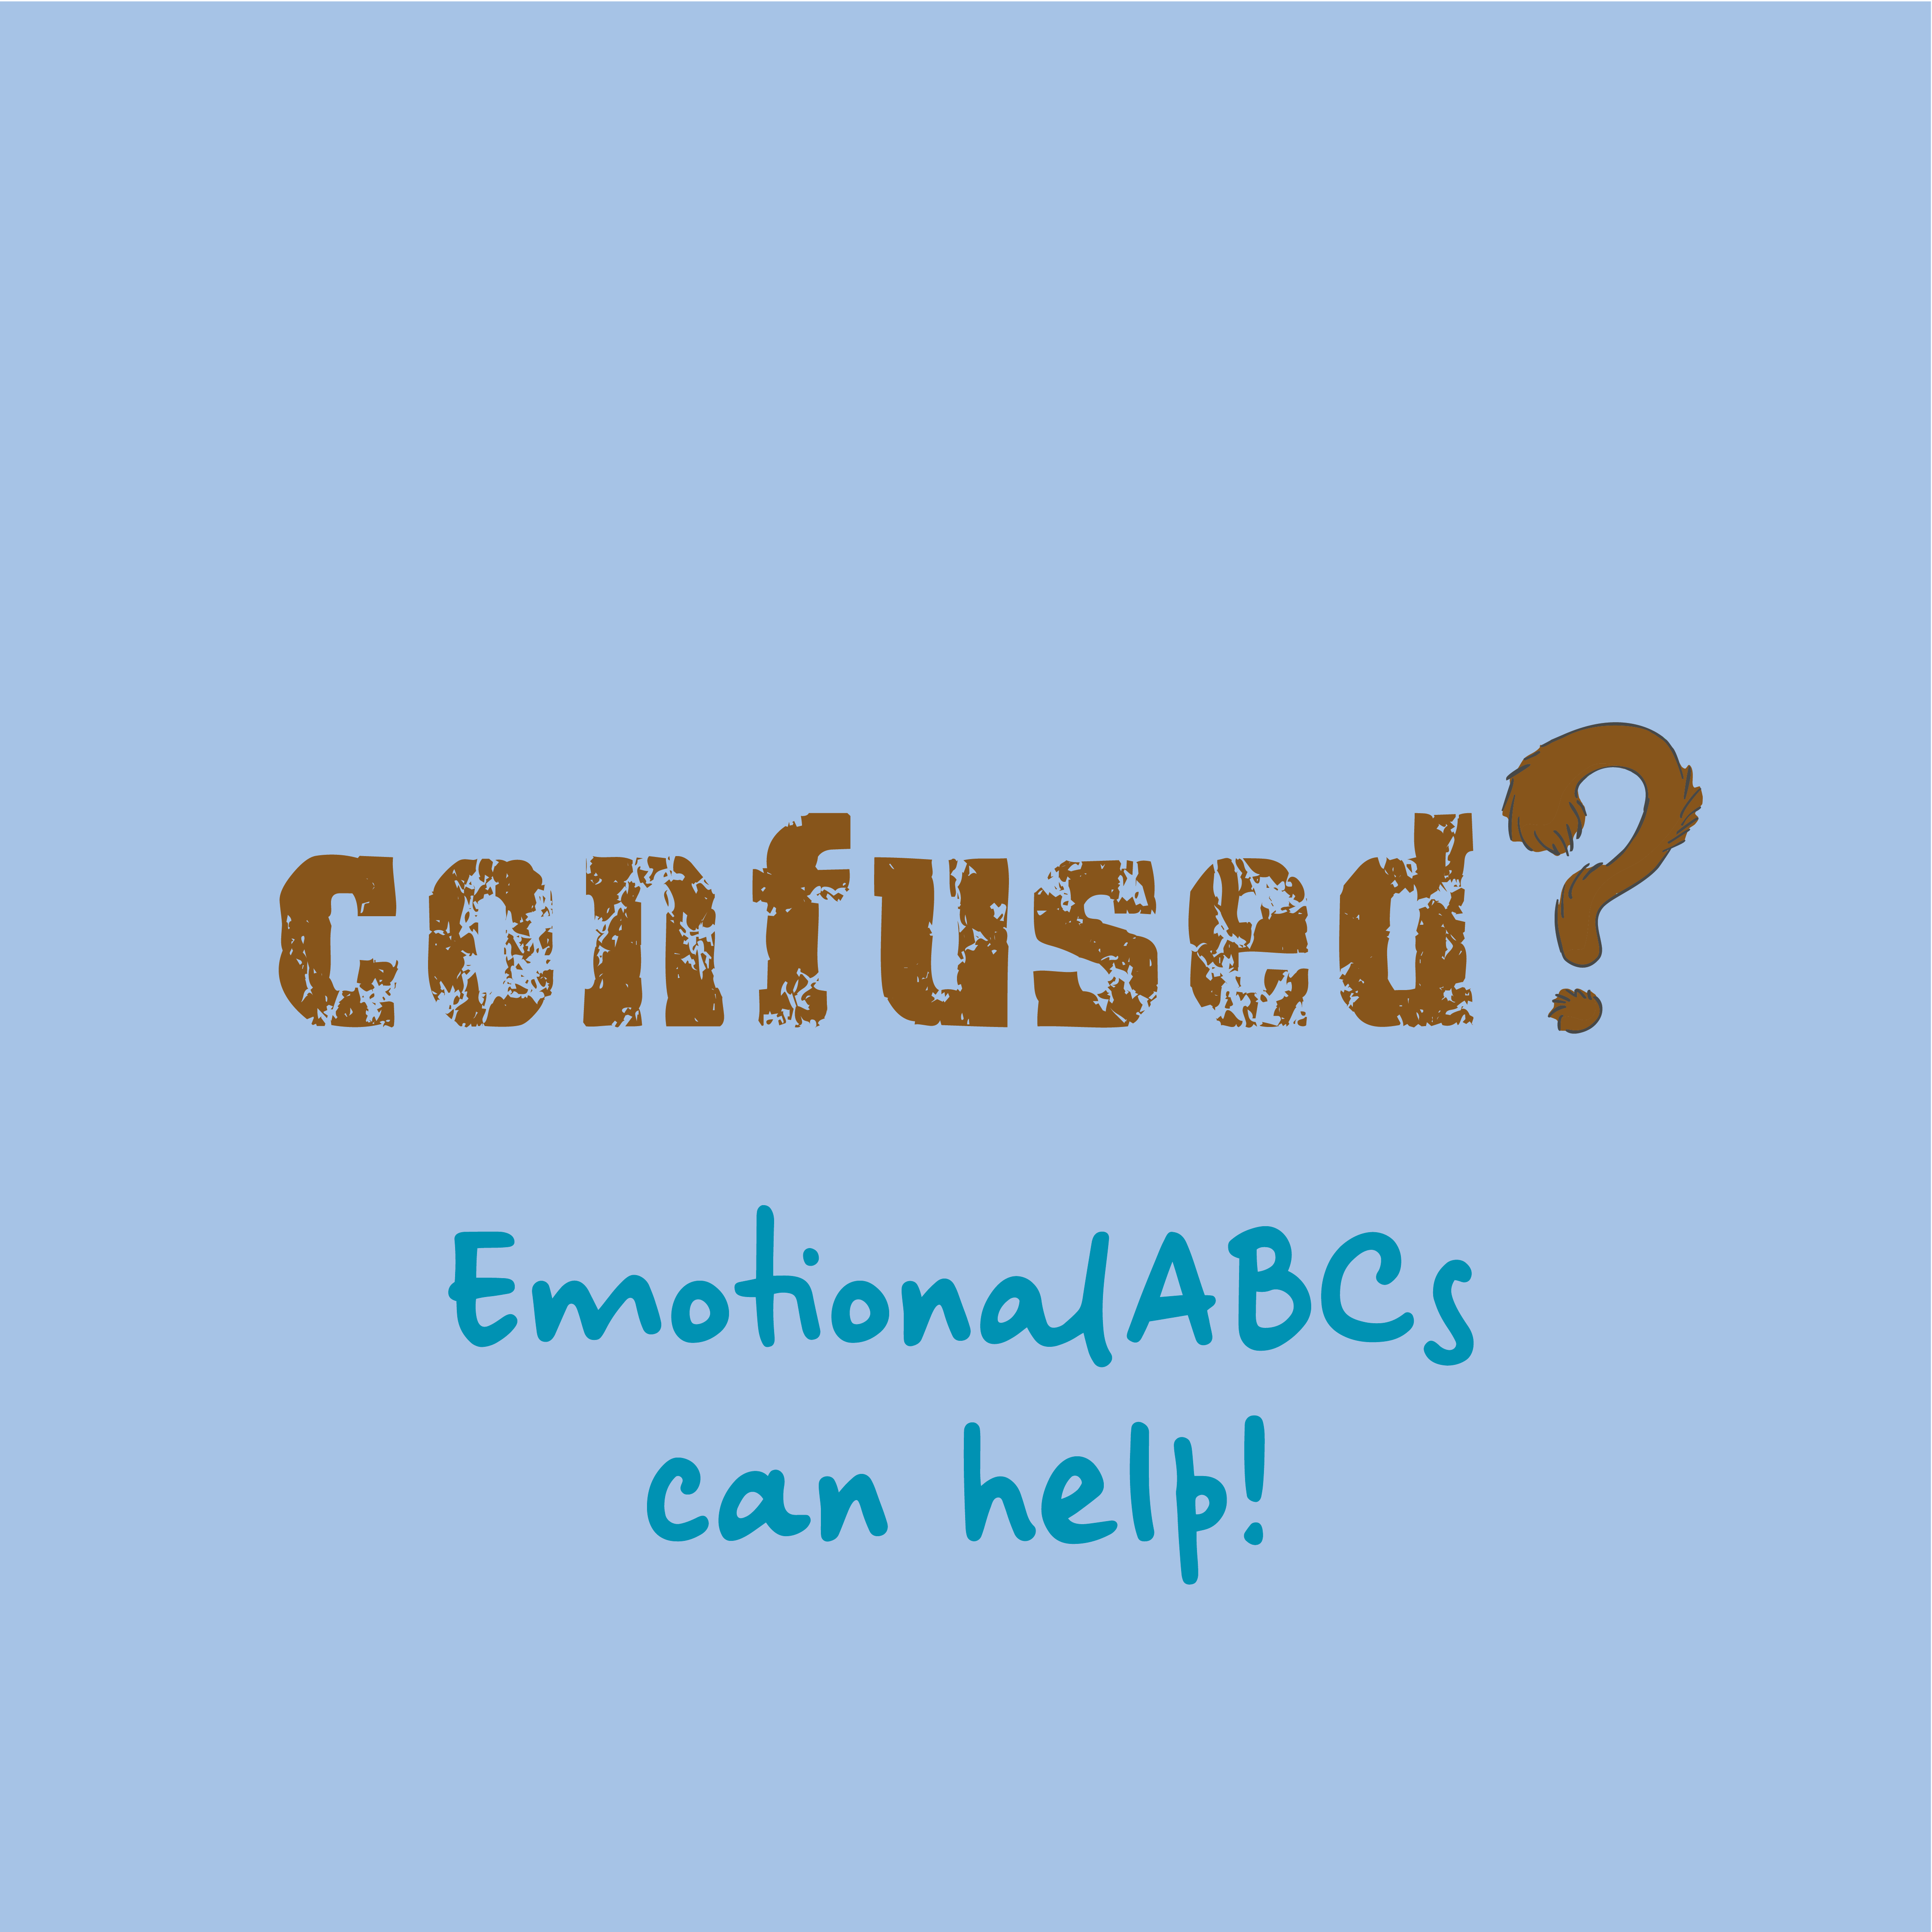 Do You Know Your Emotional Abcs For A Lifetime Of Emotional Skills Learn The Basics At Emo Social Emotional Learning Emotional Skills Social Emotional Skills